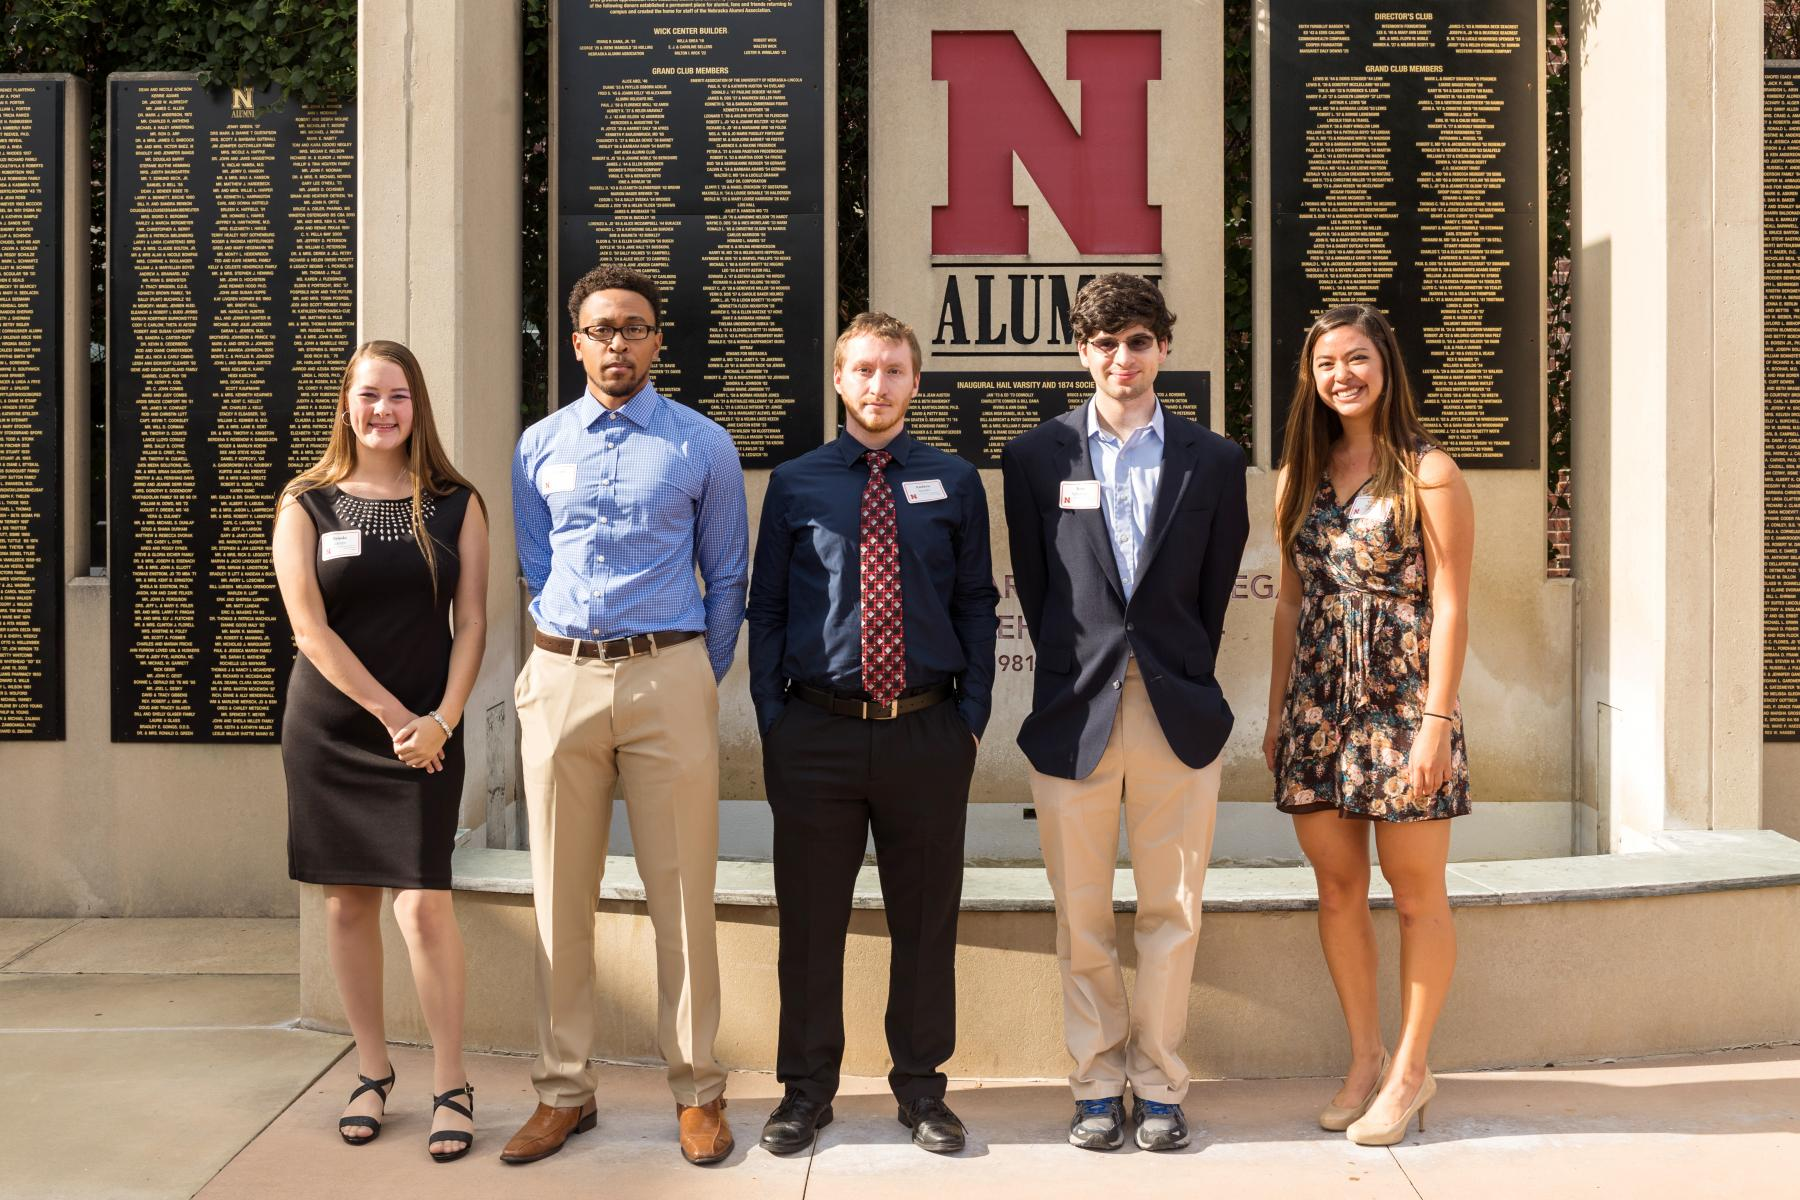 Summer Research Program students at the annual banquet. From left to right: Brooke Lampe, Quavanti Hart, Andrew Snyder, Jesse Schulman, and Victoria Moran.